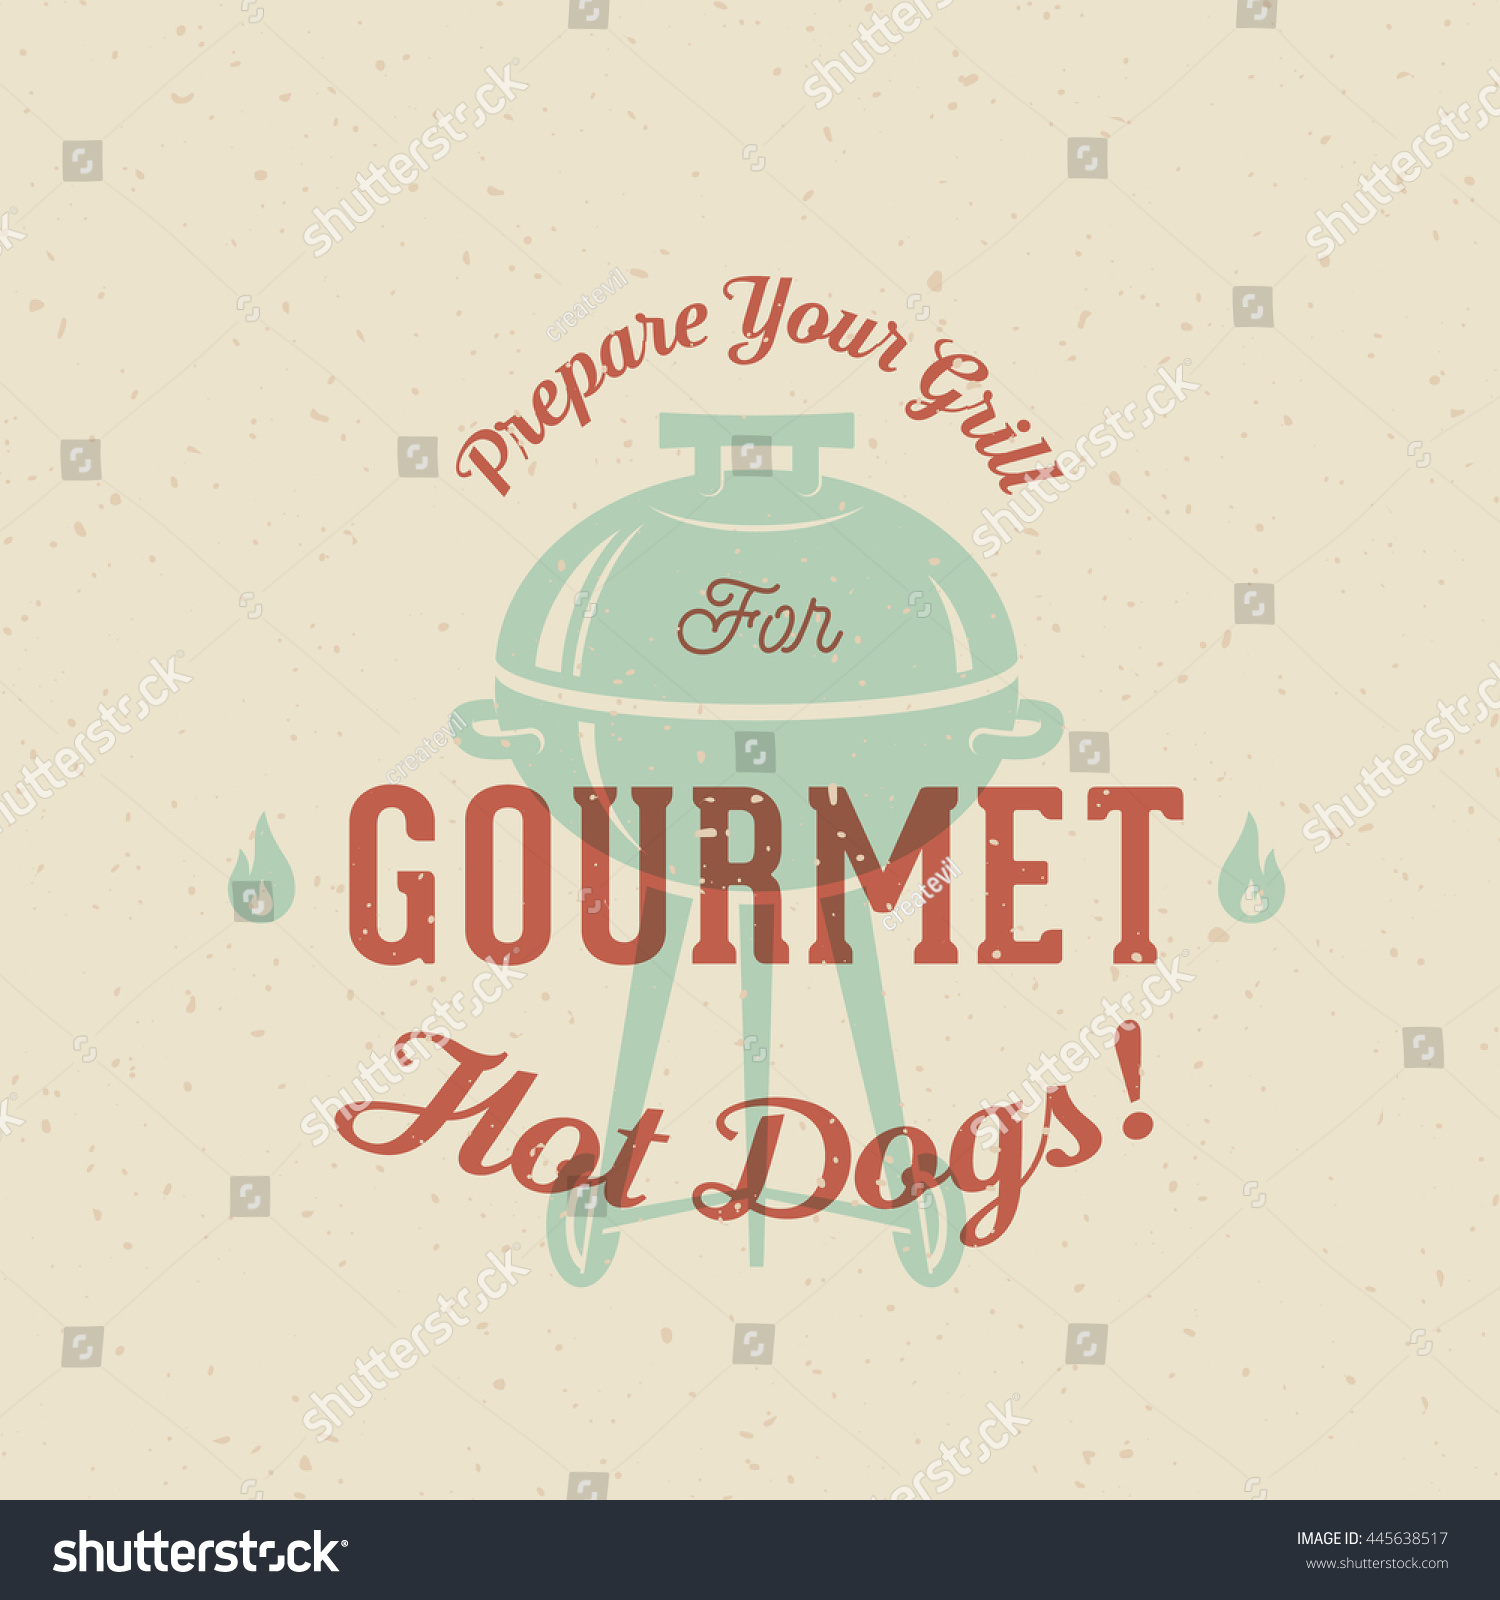 Gourmet Grill Hot Dogs Vintage Vector Stock Vector Royalty Free